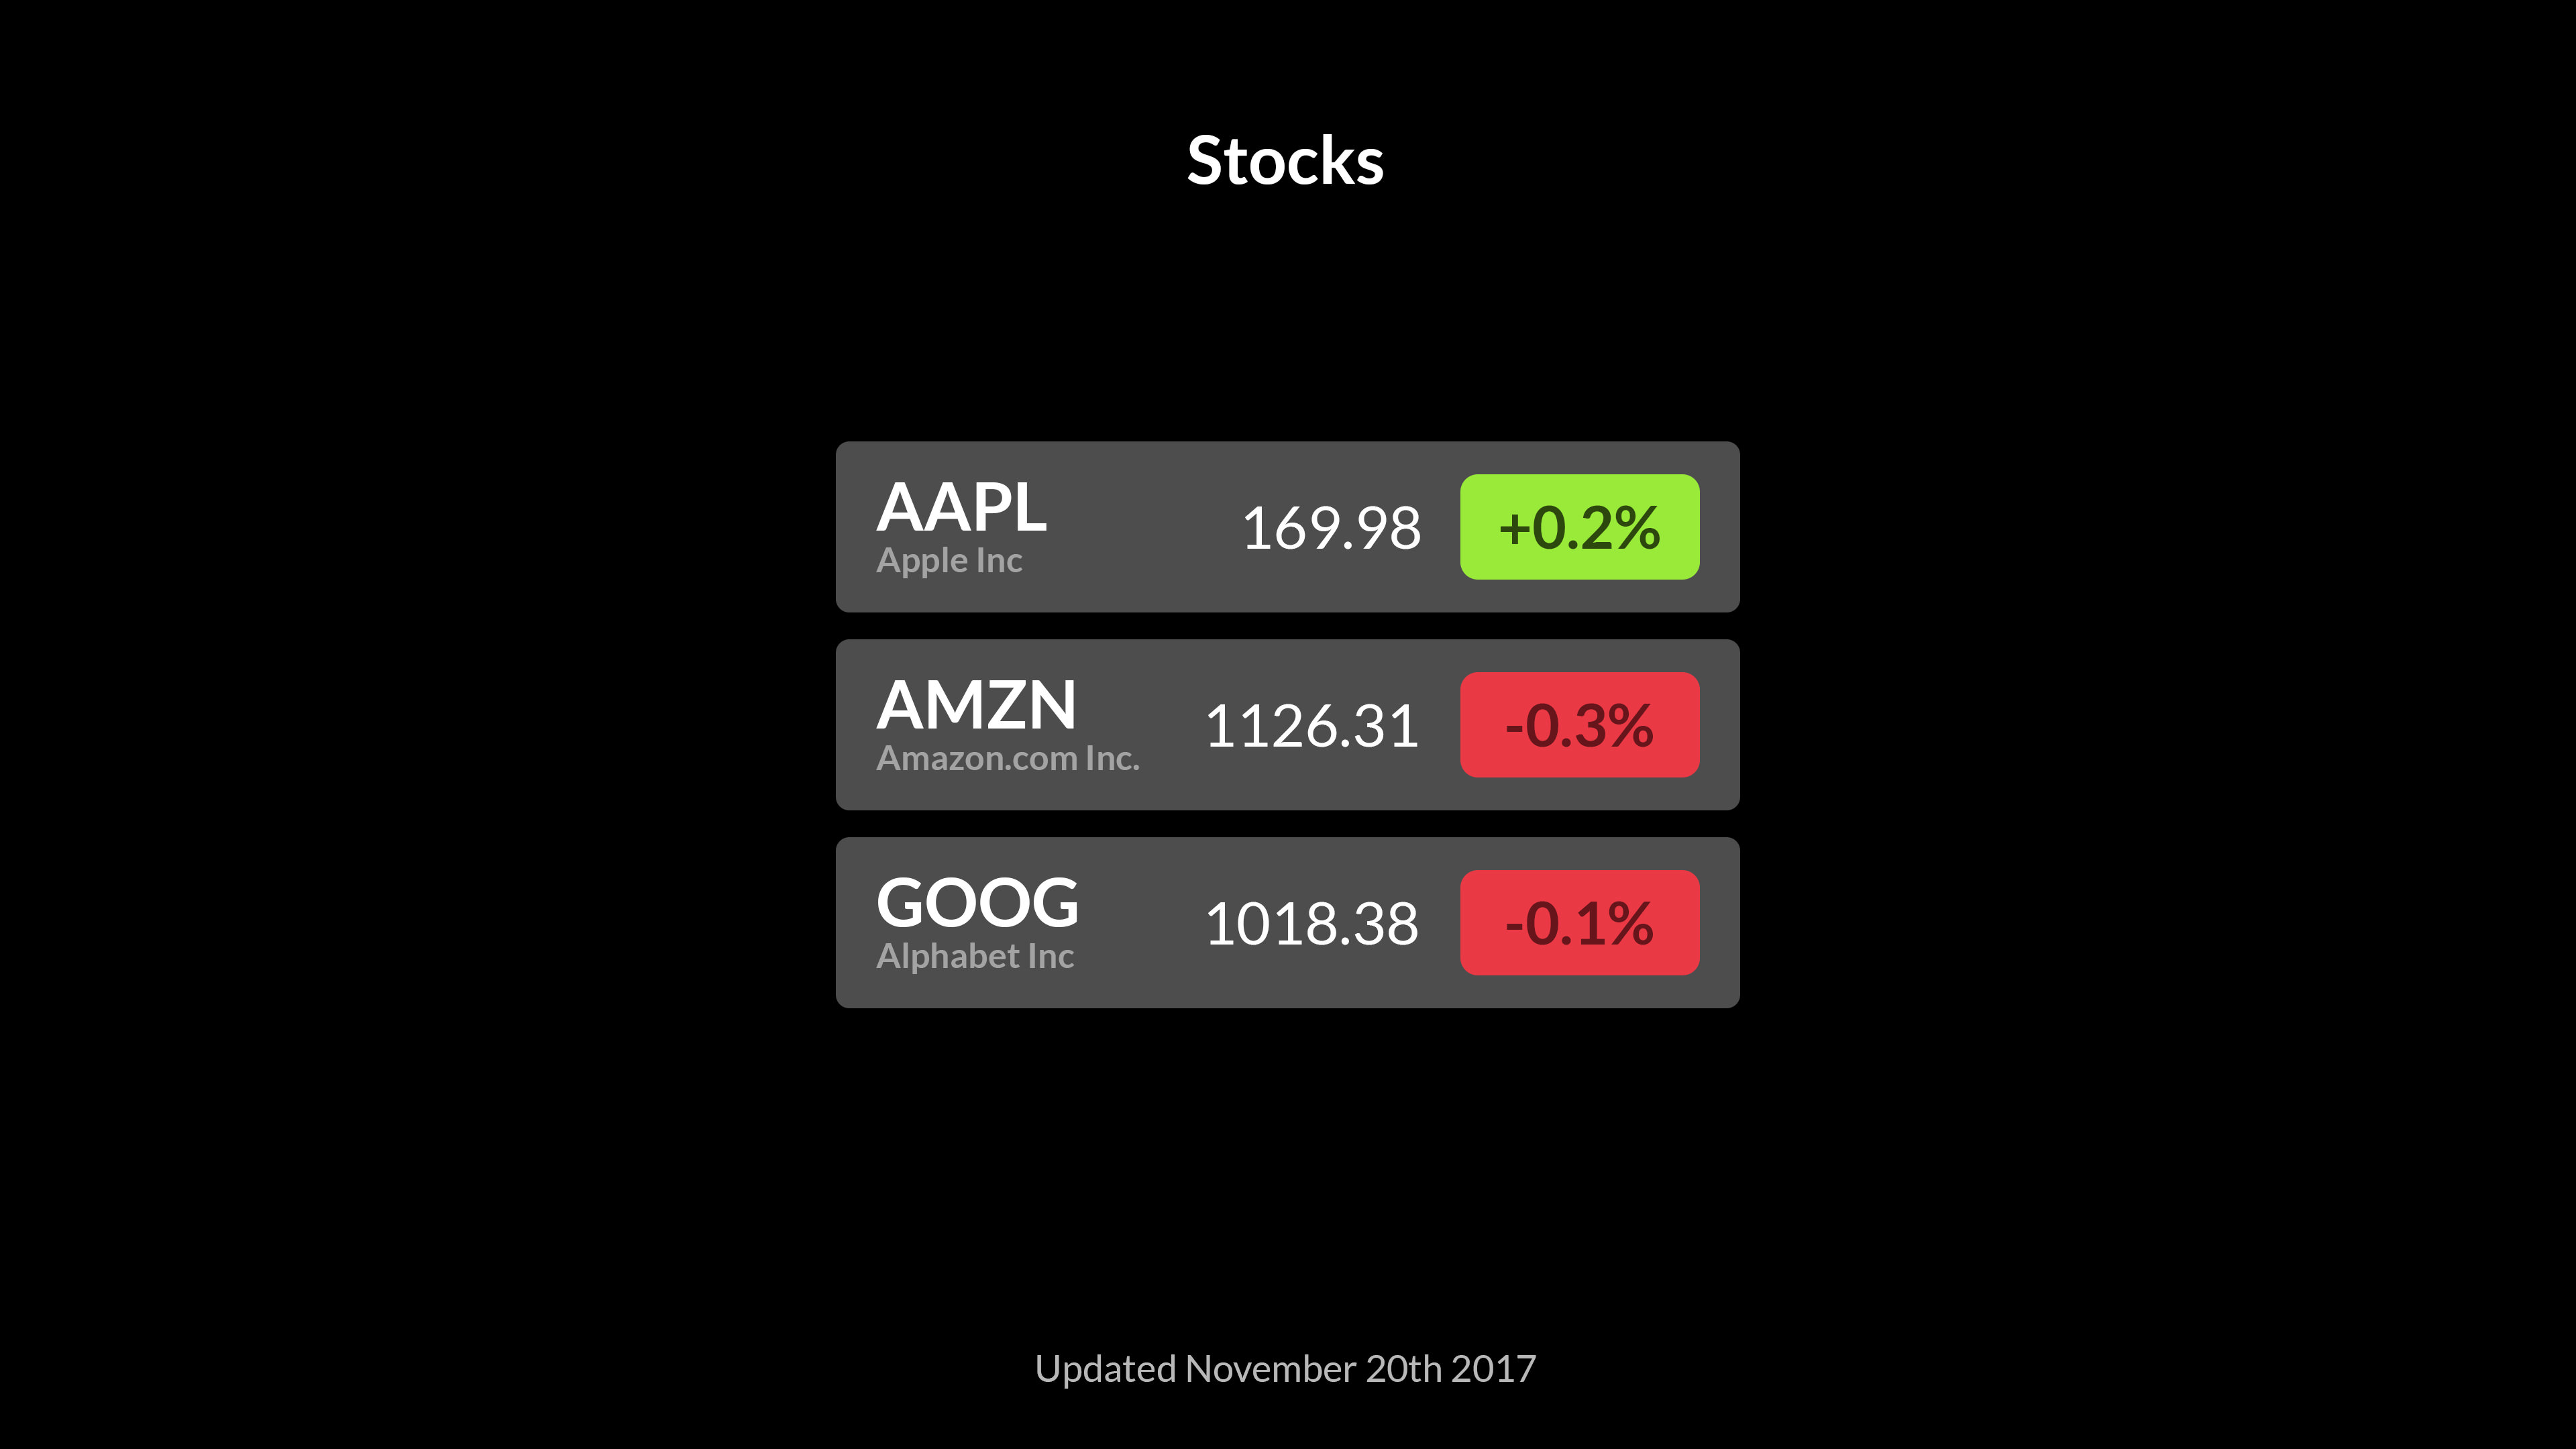 Stocks screenshot 1